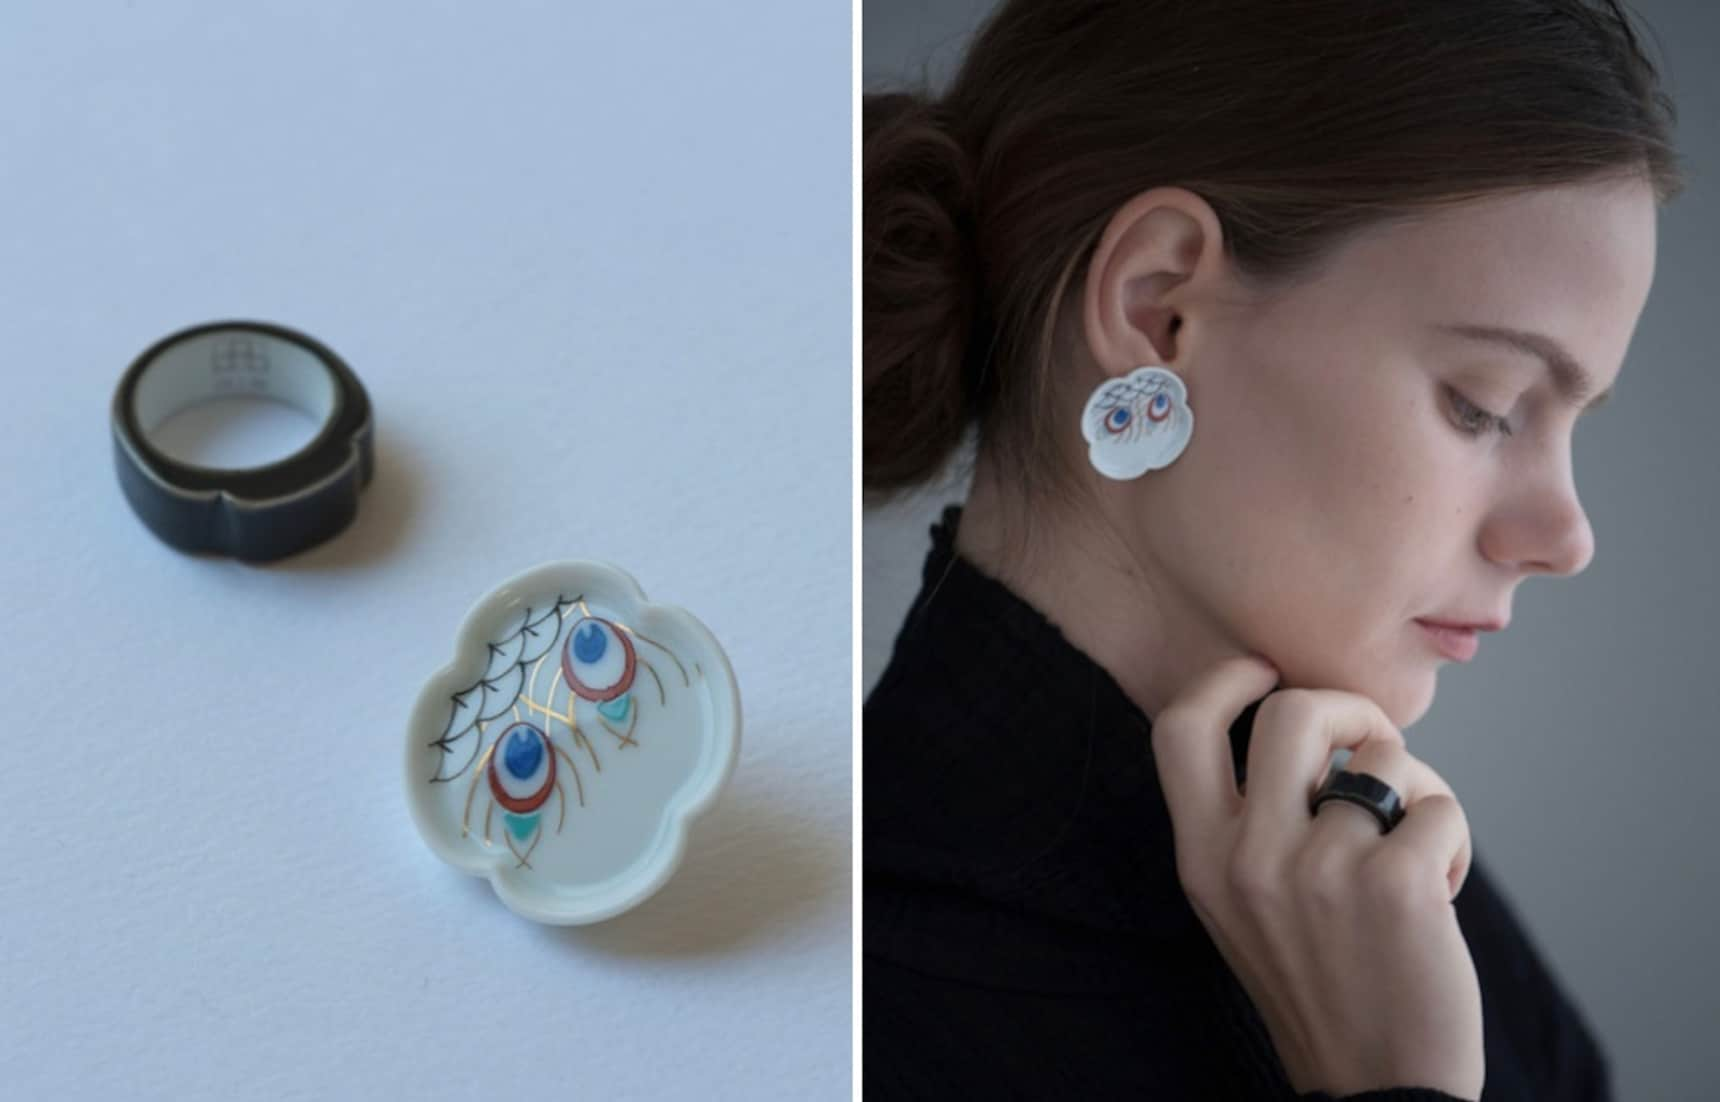 Imari Porcelain Jewelry is a Handmade Dream